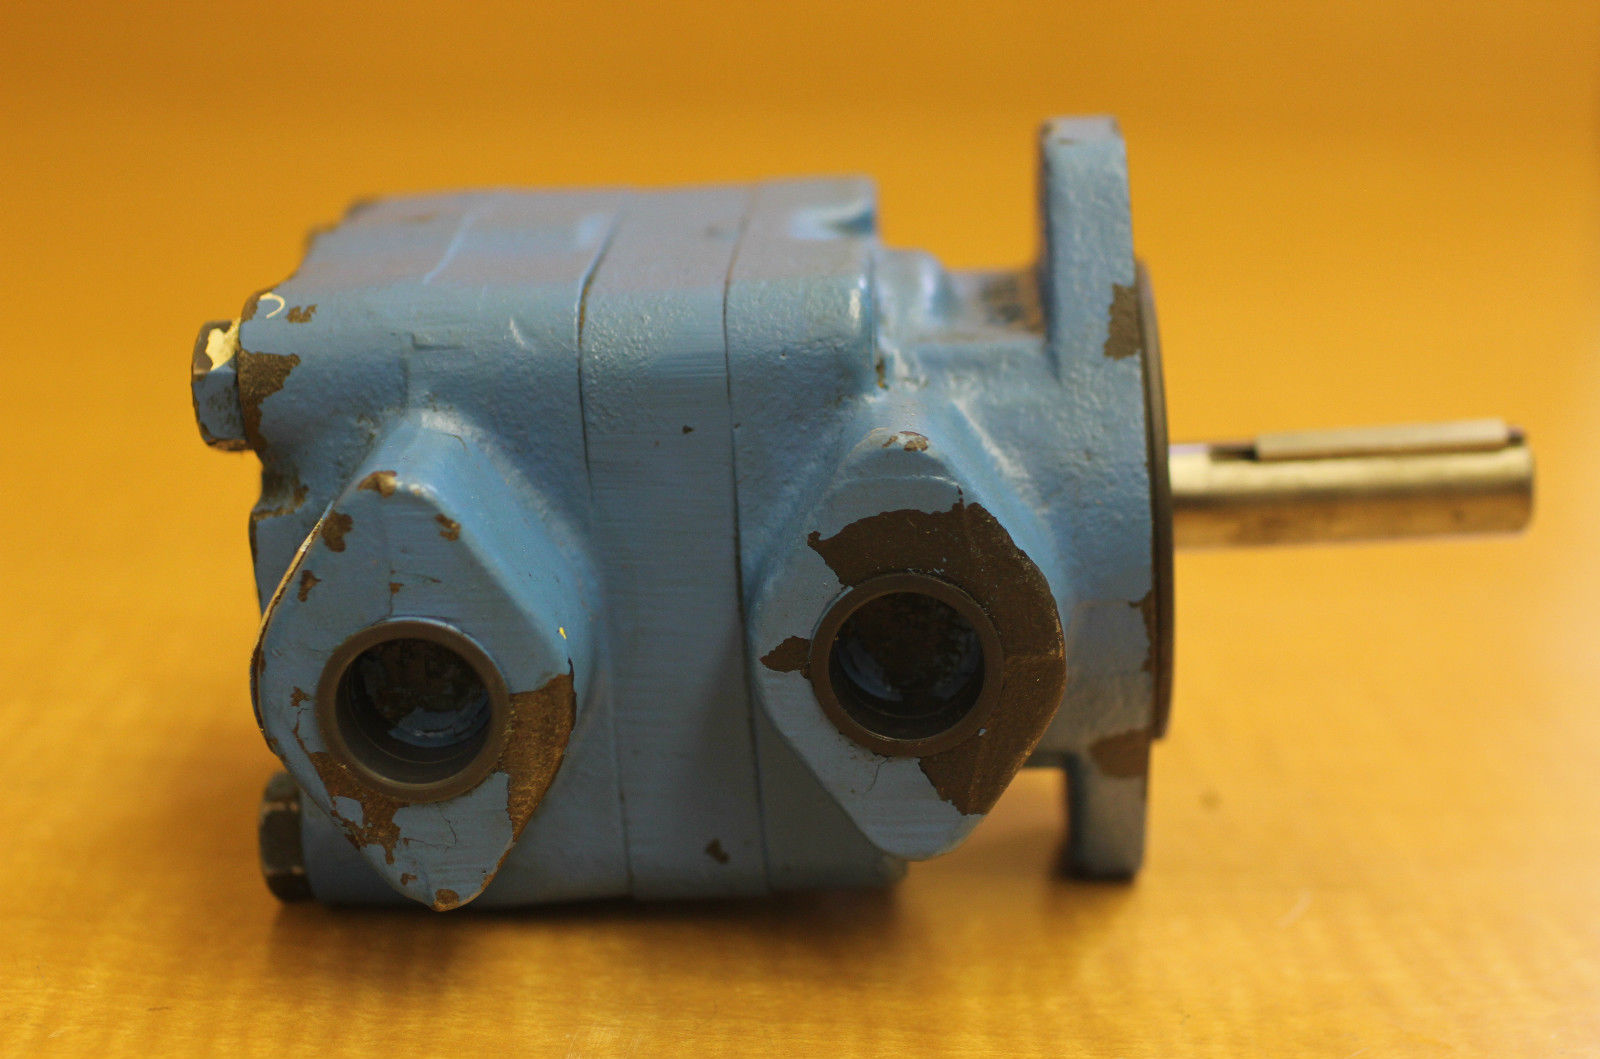 Rblt vickers eaton hydraulic oil pump vane motor 168473 3 for Hydraulic pump with motor